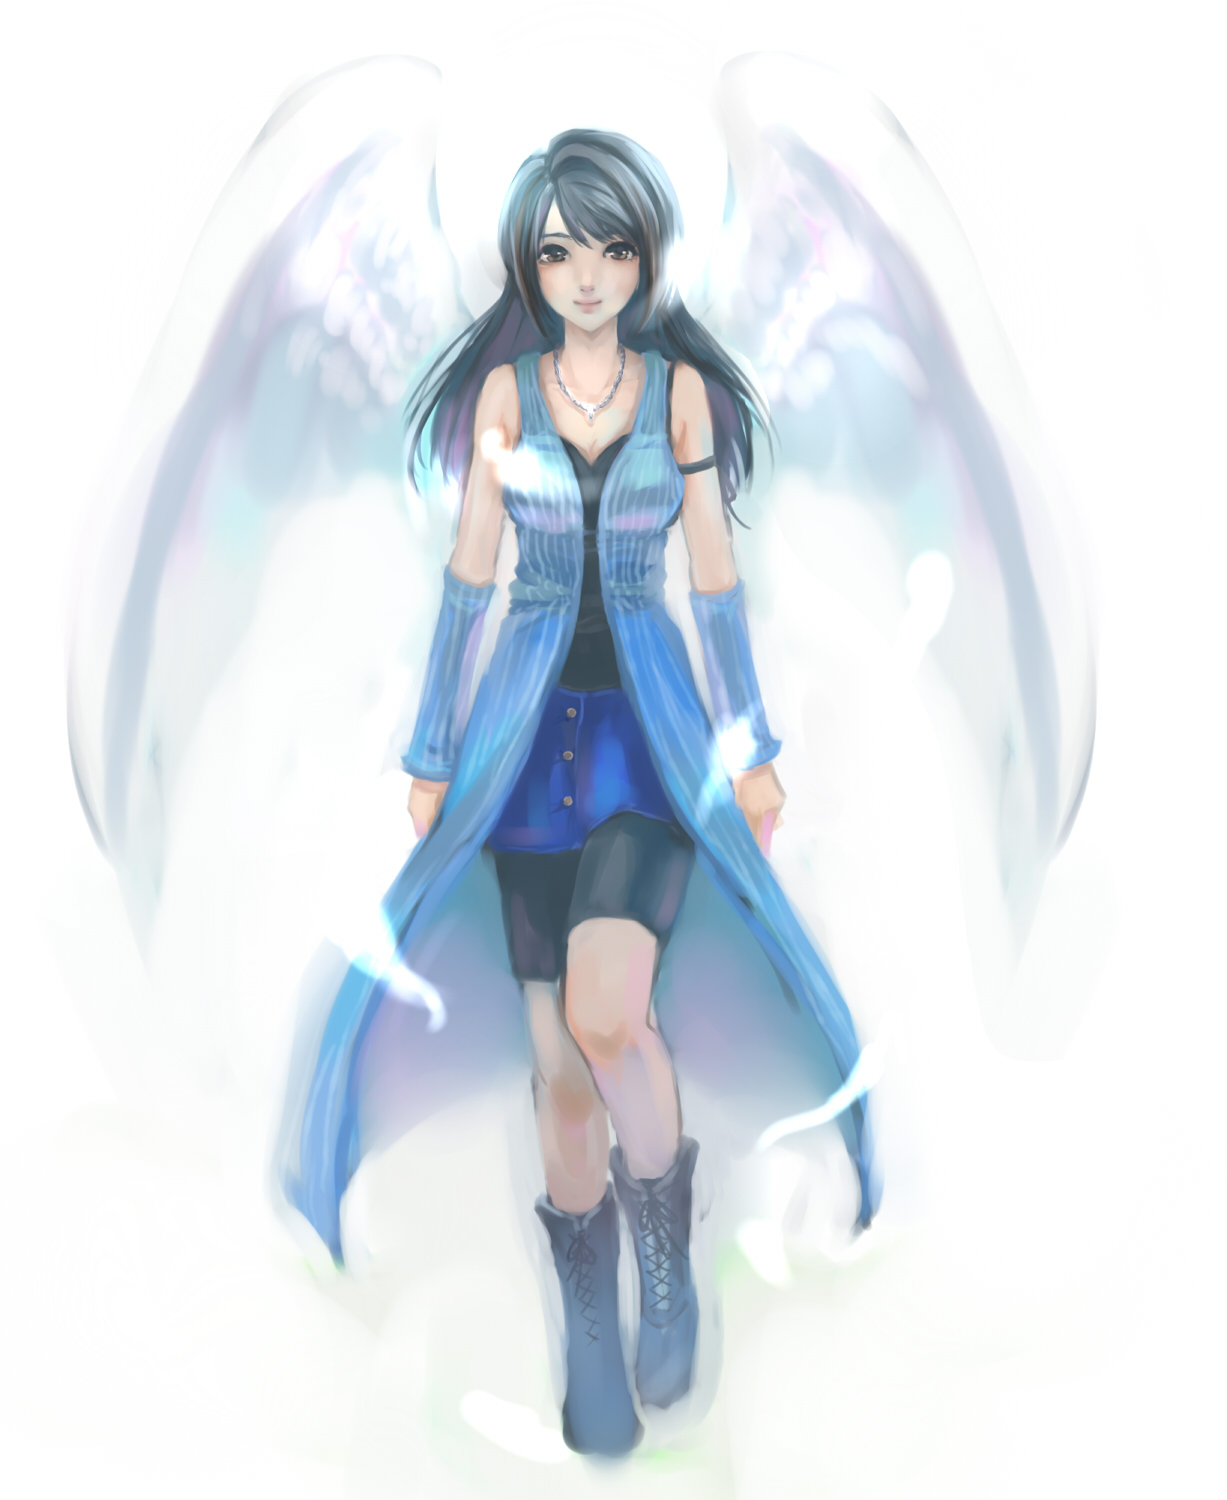 1227 x 1500 jpeg 393kB, Msyugioh123 Rinoa Heartilly source: http://www ... Final Fantasy Rinoa And Squall